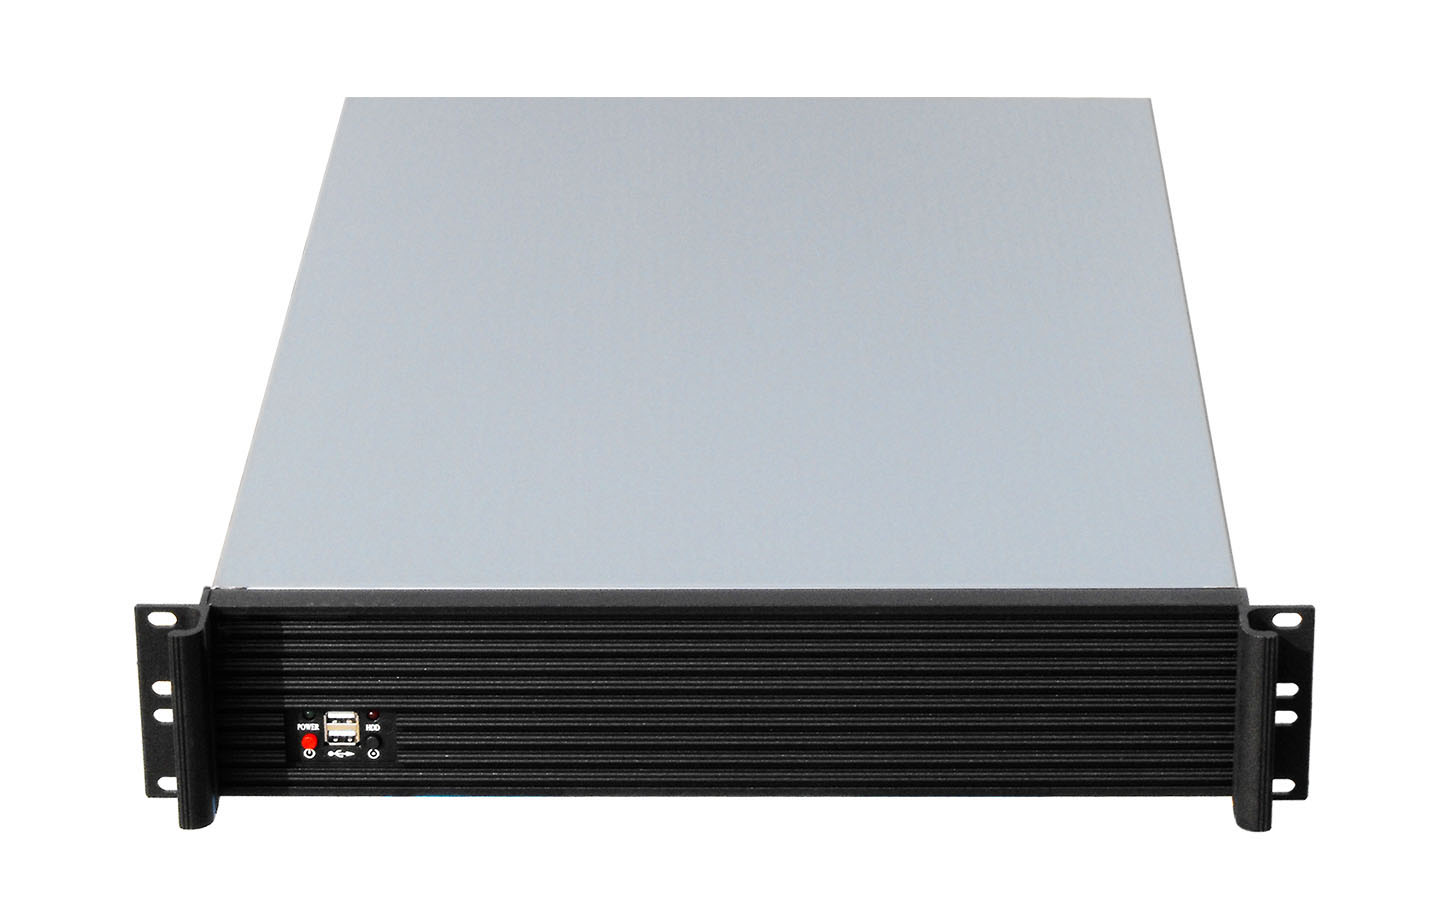 2U server case 2U industrial chassis Support motherboard size up to 1213and435HDD bays825HDDSSD1U power sup